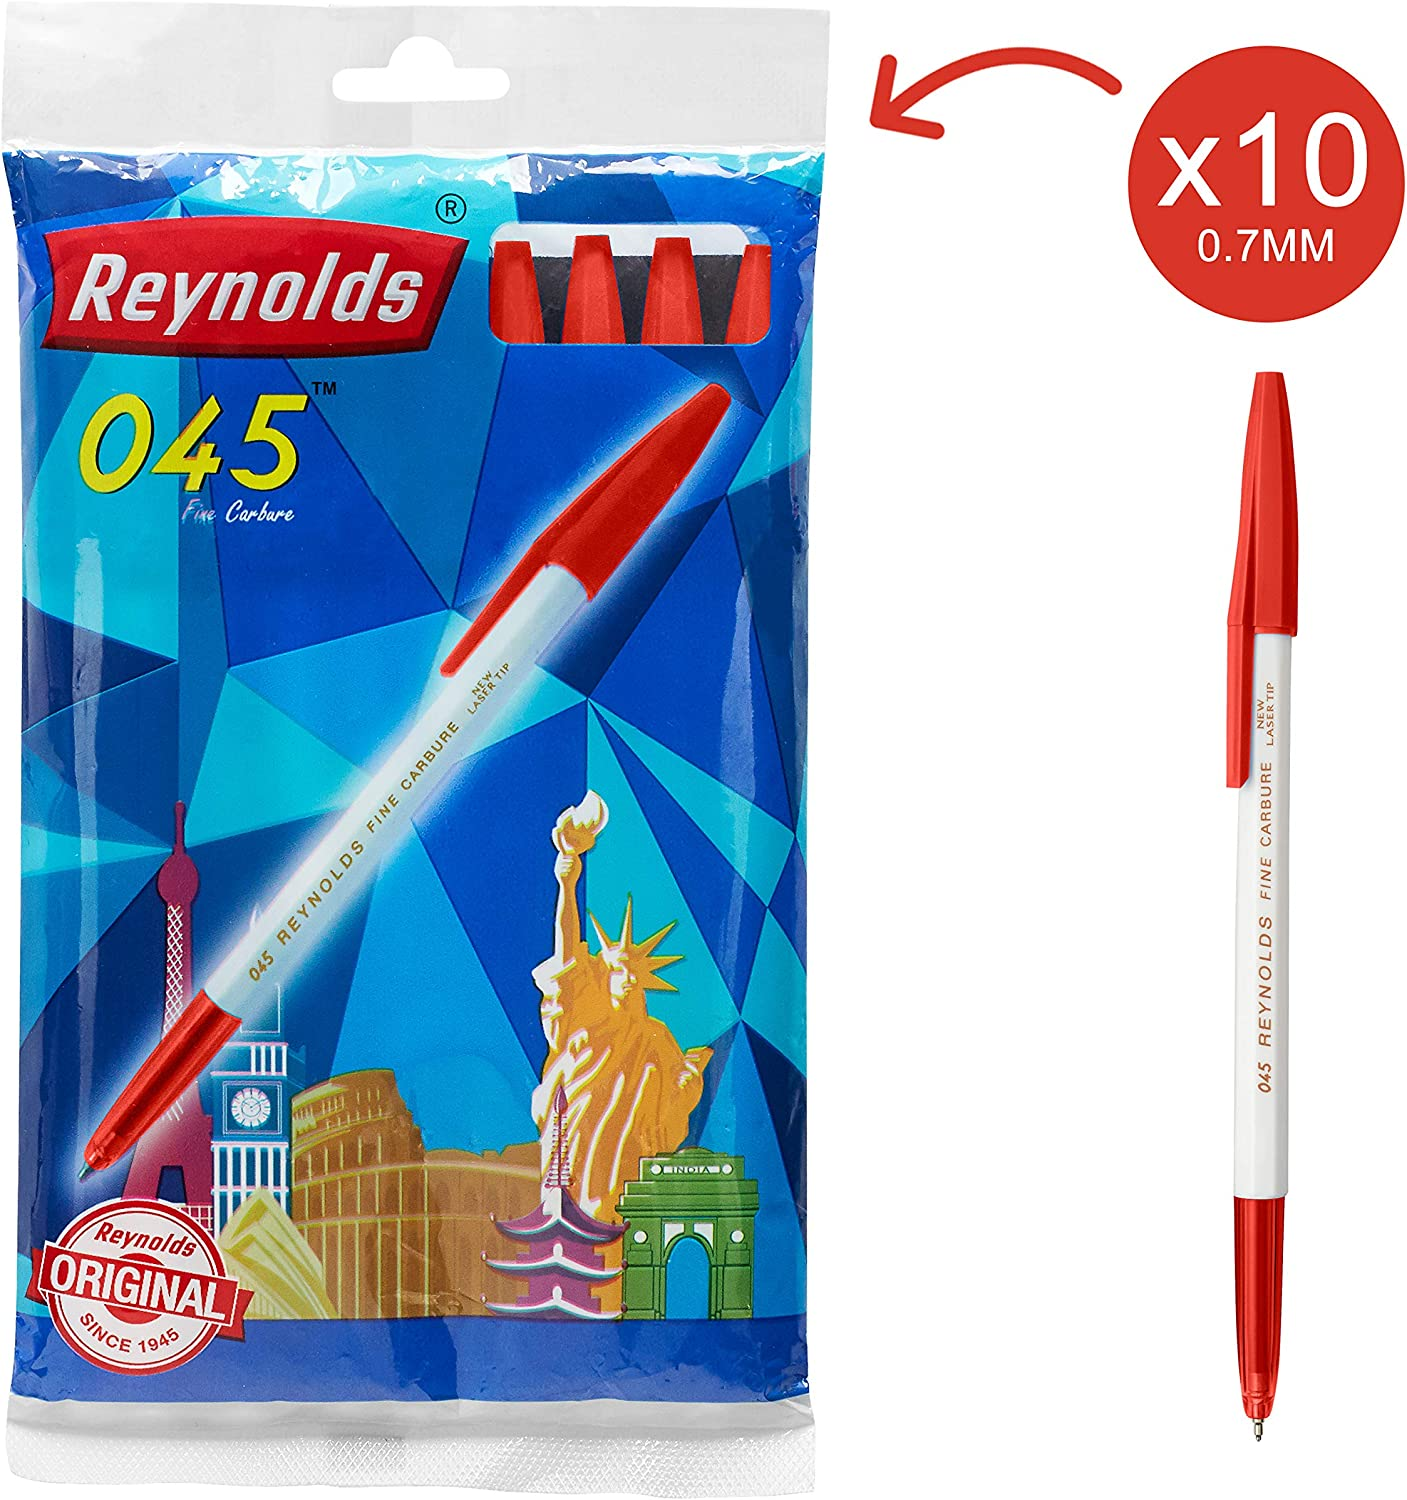 Reynolds 045 Ball Pen - Red, Pack of 10